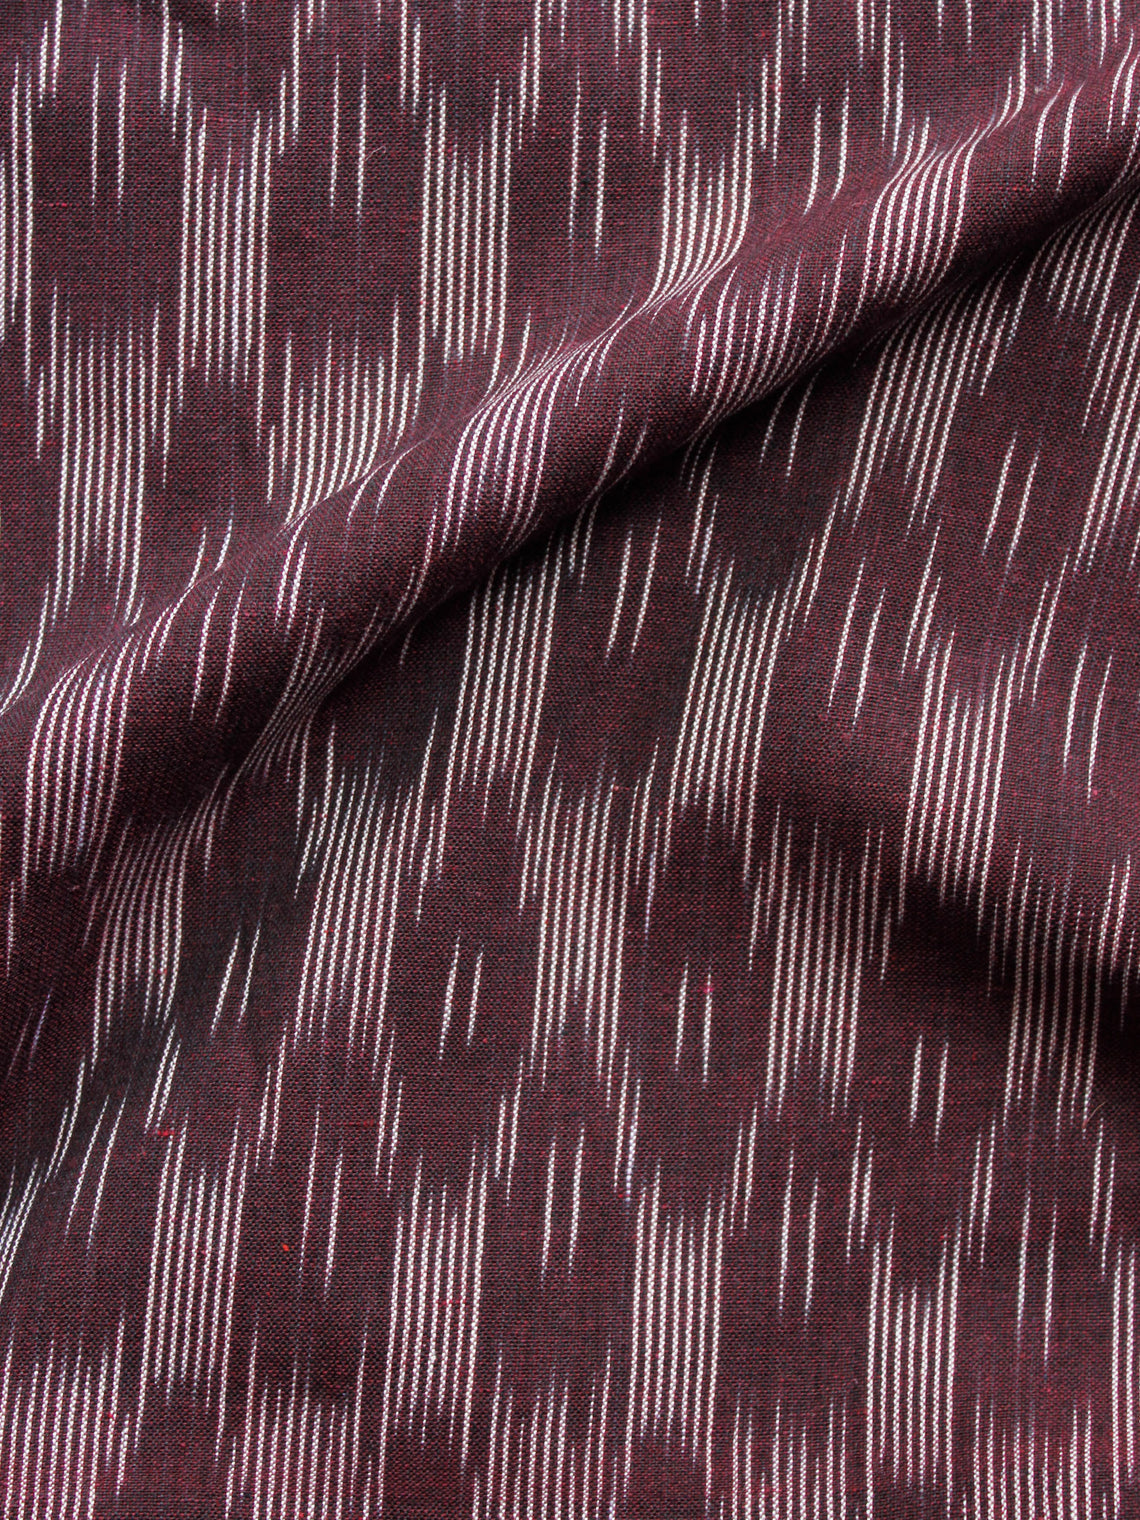 Maroon Ivory Pochampally Hand Woven Ikat Cotton Fabric Per Meter - F002F1463